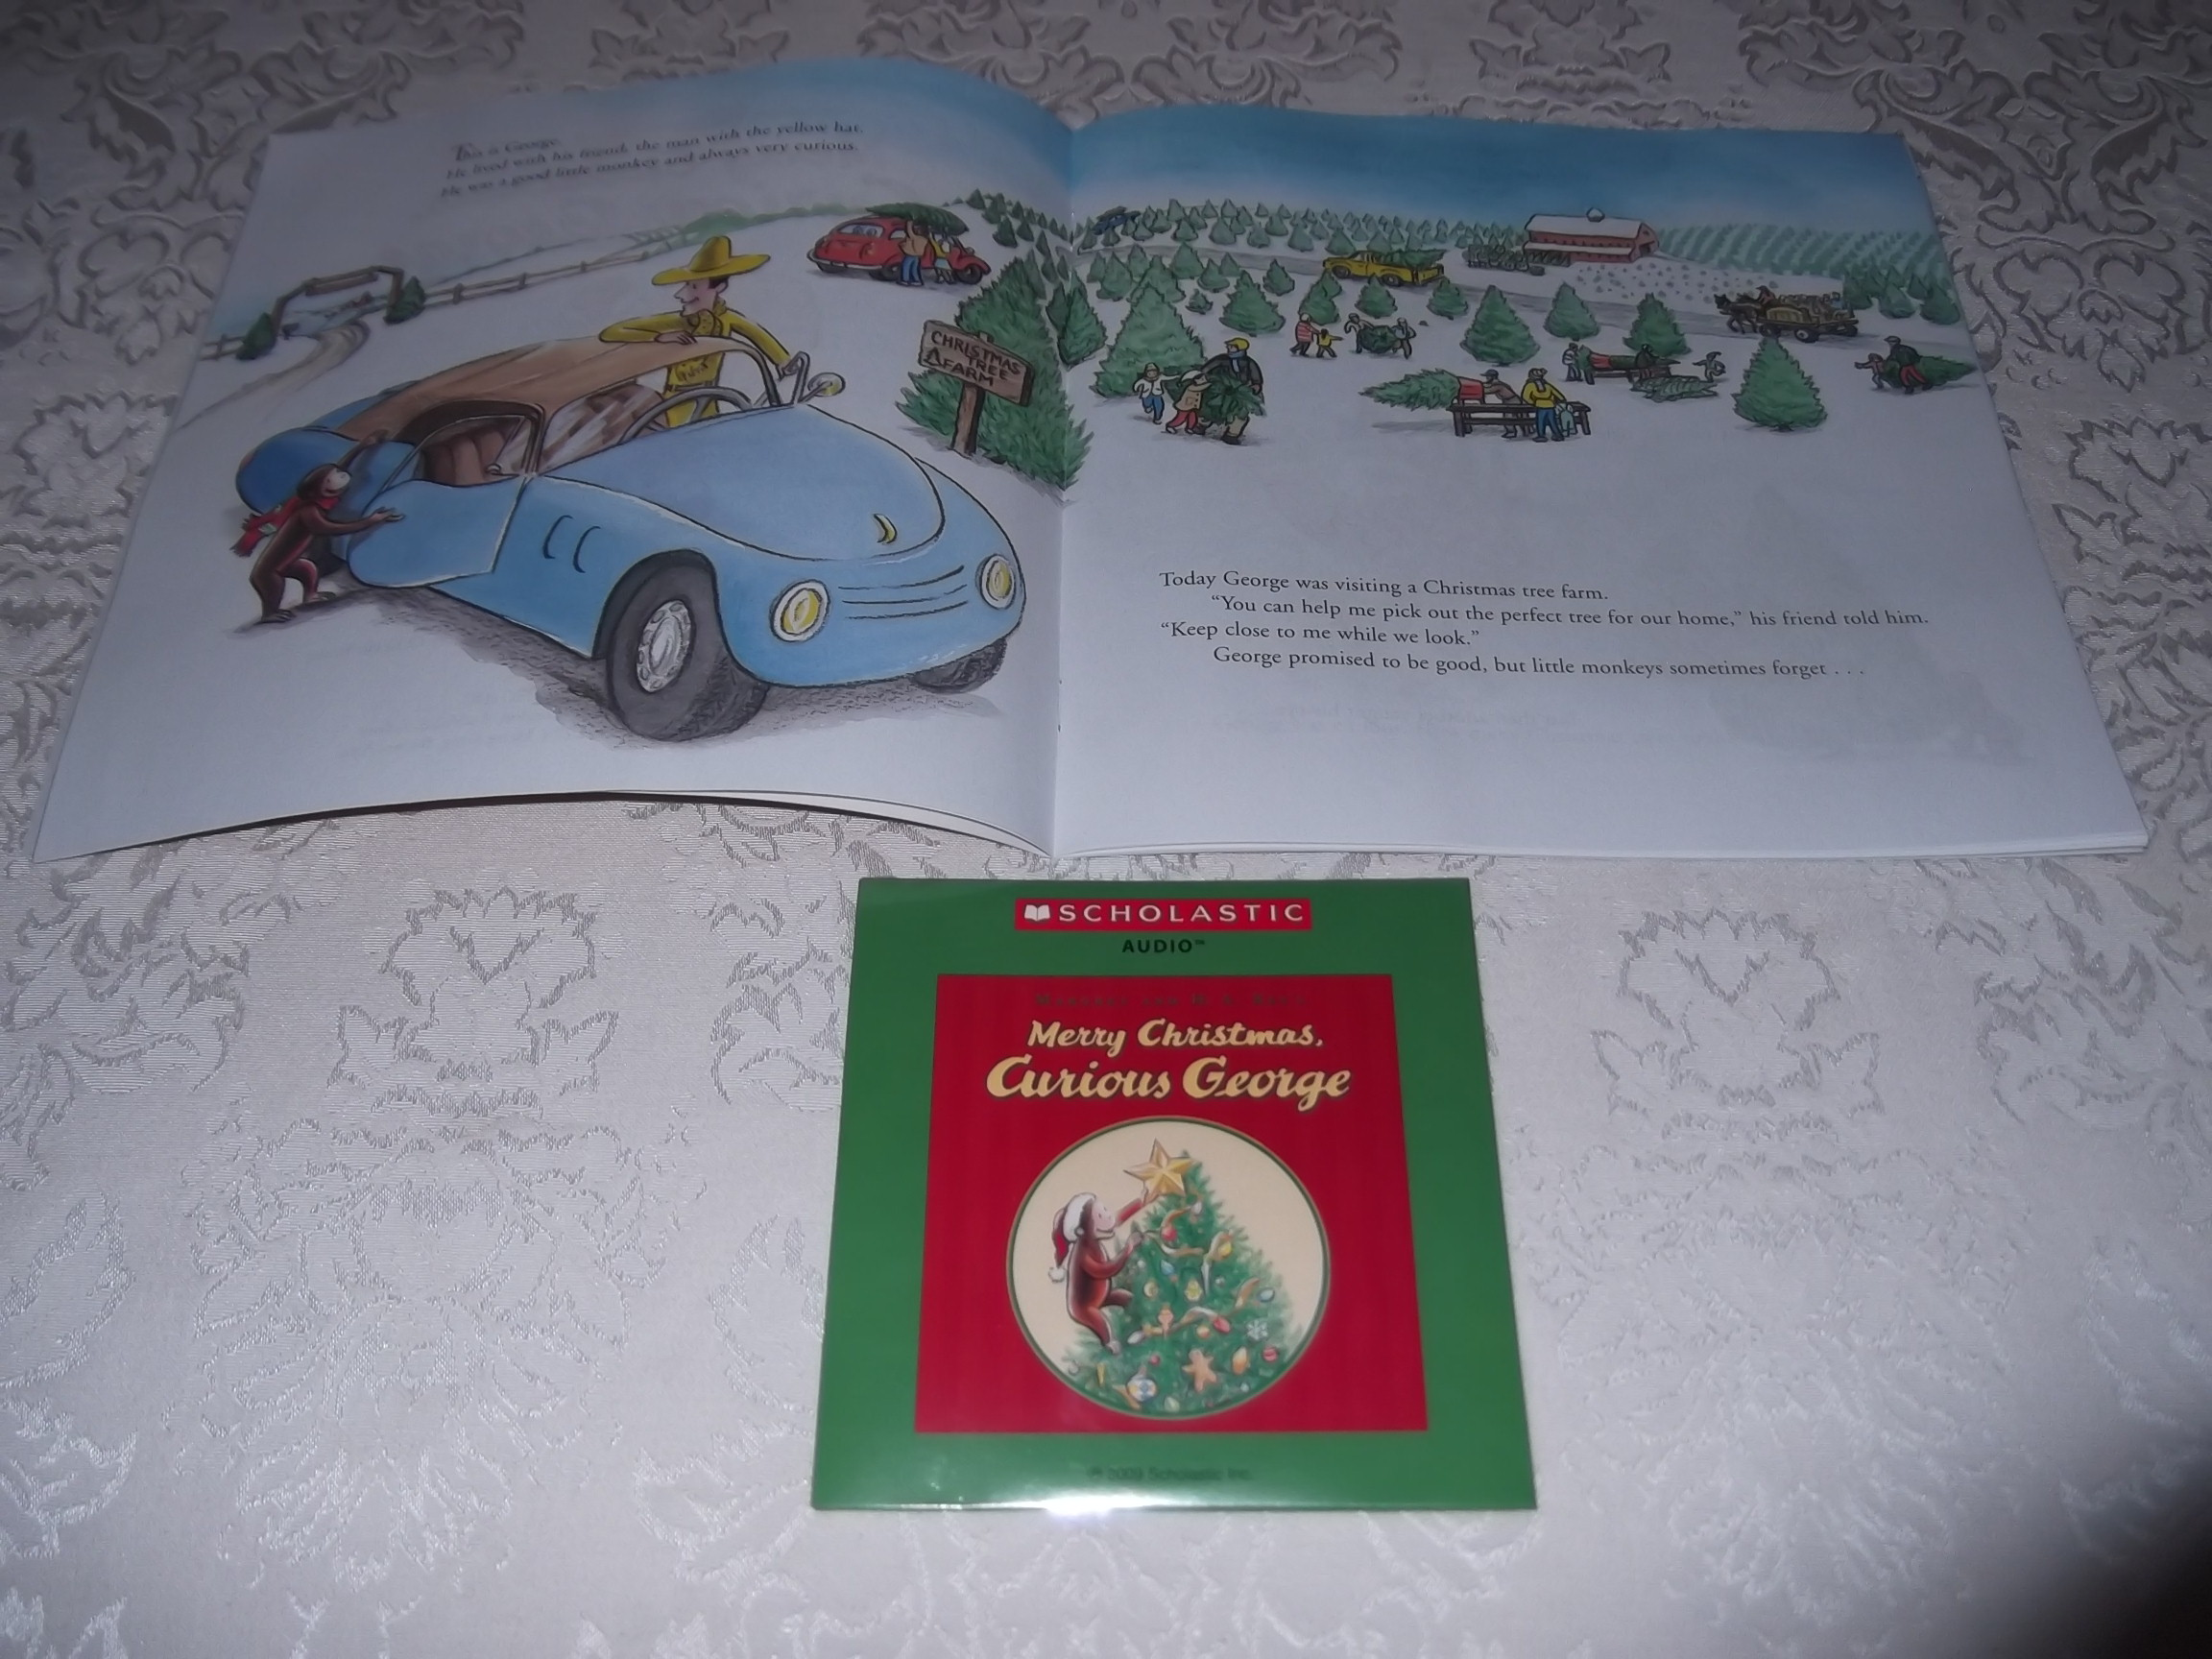 Image 1 of Merry Christmas, Curious George Margret and H.A. Rey Brand New Audio CD and SC